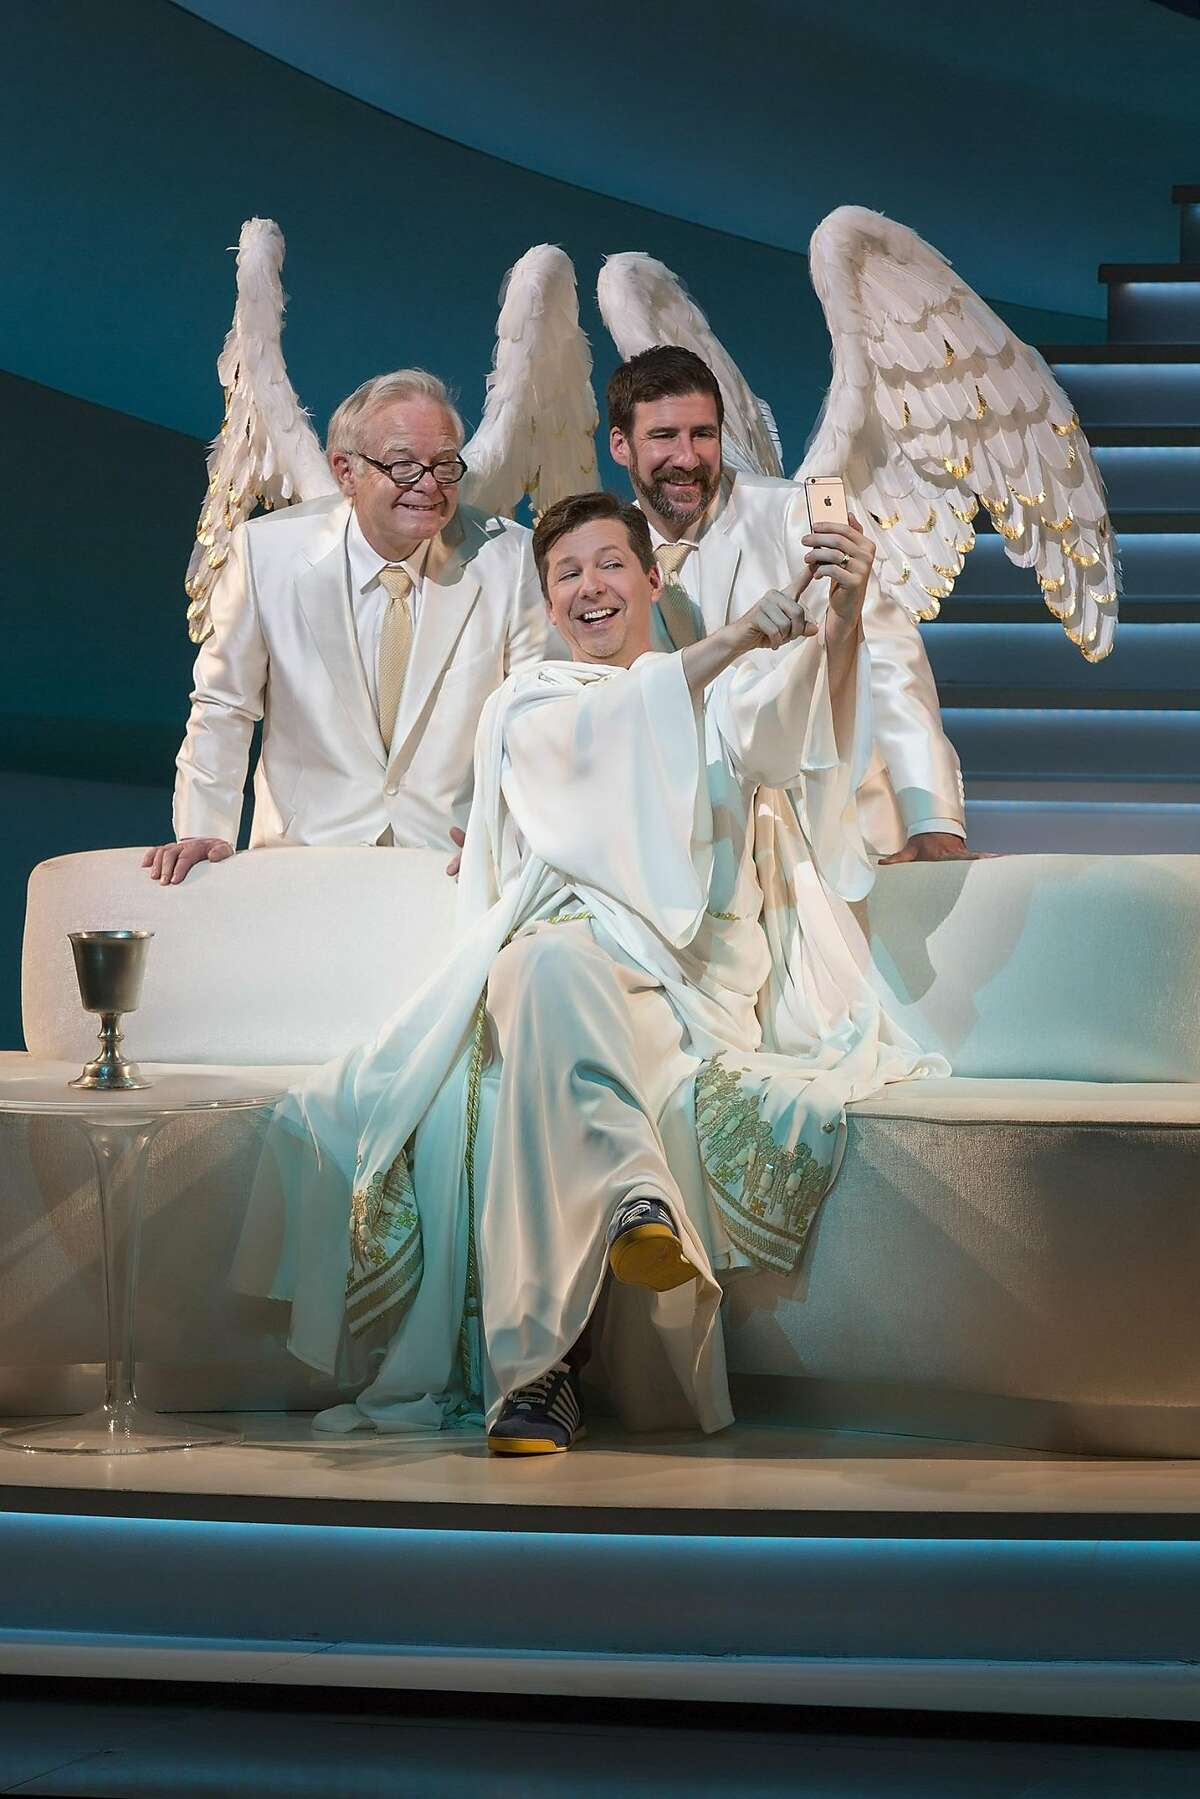 """James Gleason, Sean Hayes, David Josefsberg snap a divine selfie in """"An Act of God."""" The blasphemous comedy runs at the SHN Golden Gate Theatre through April 17, 2016. Photo by Jim Cox"""